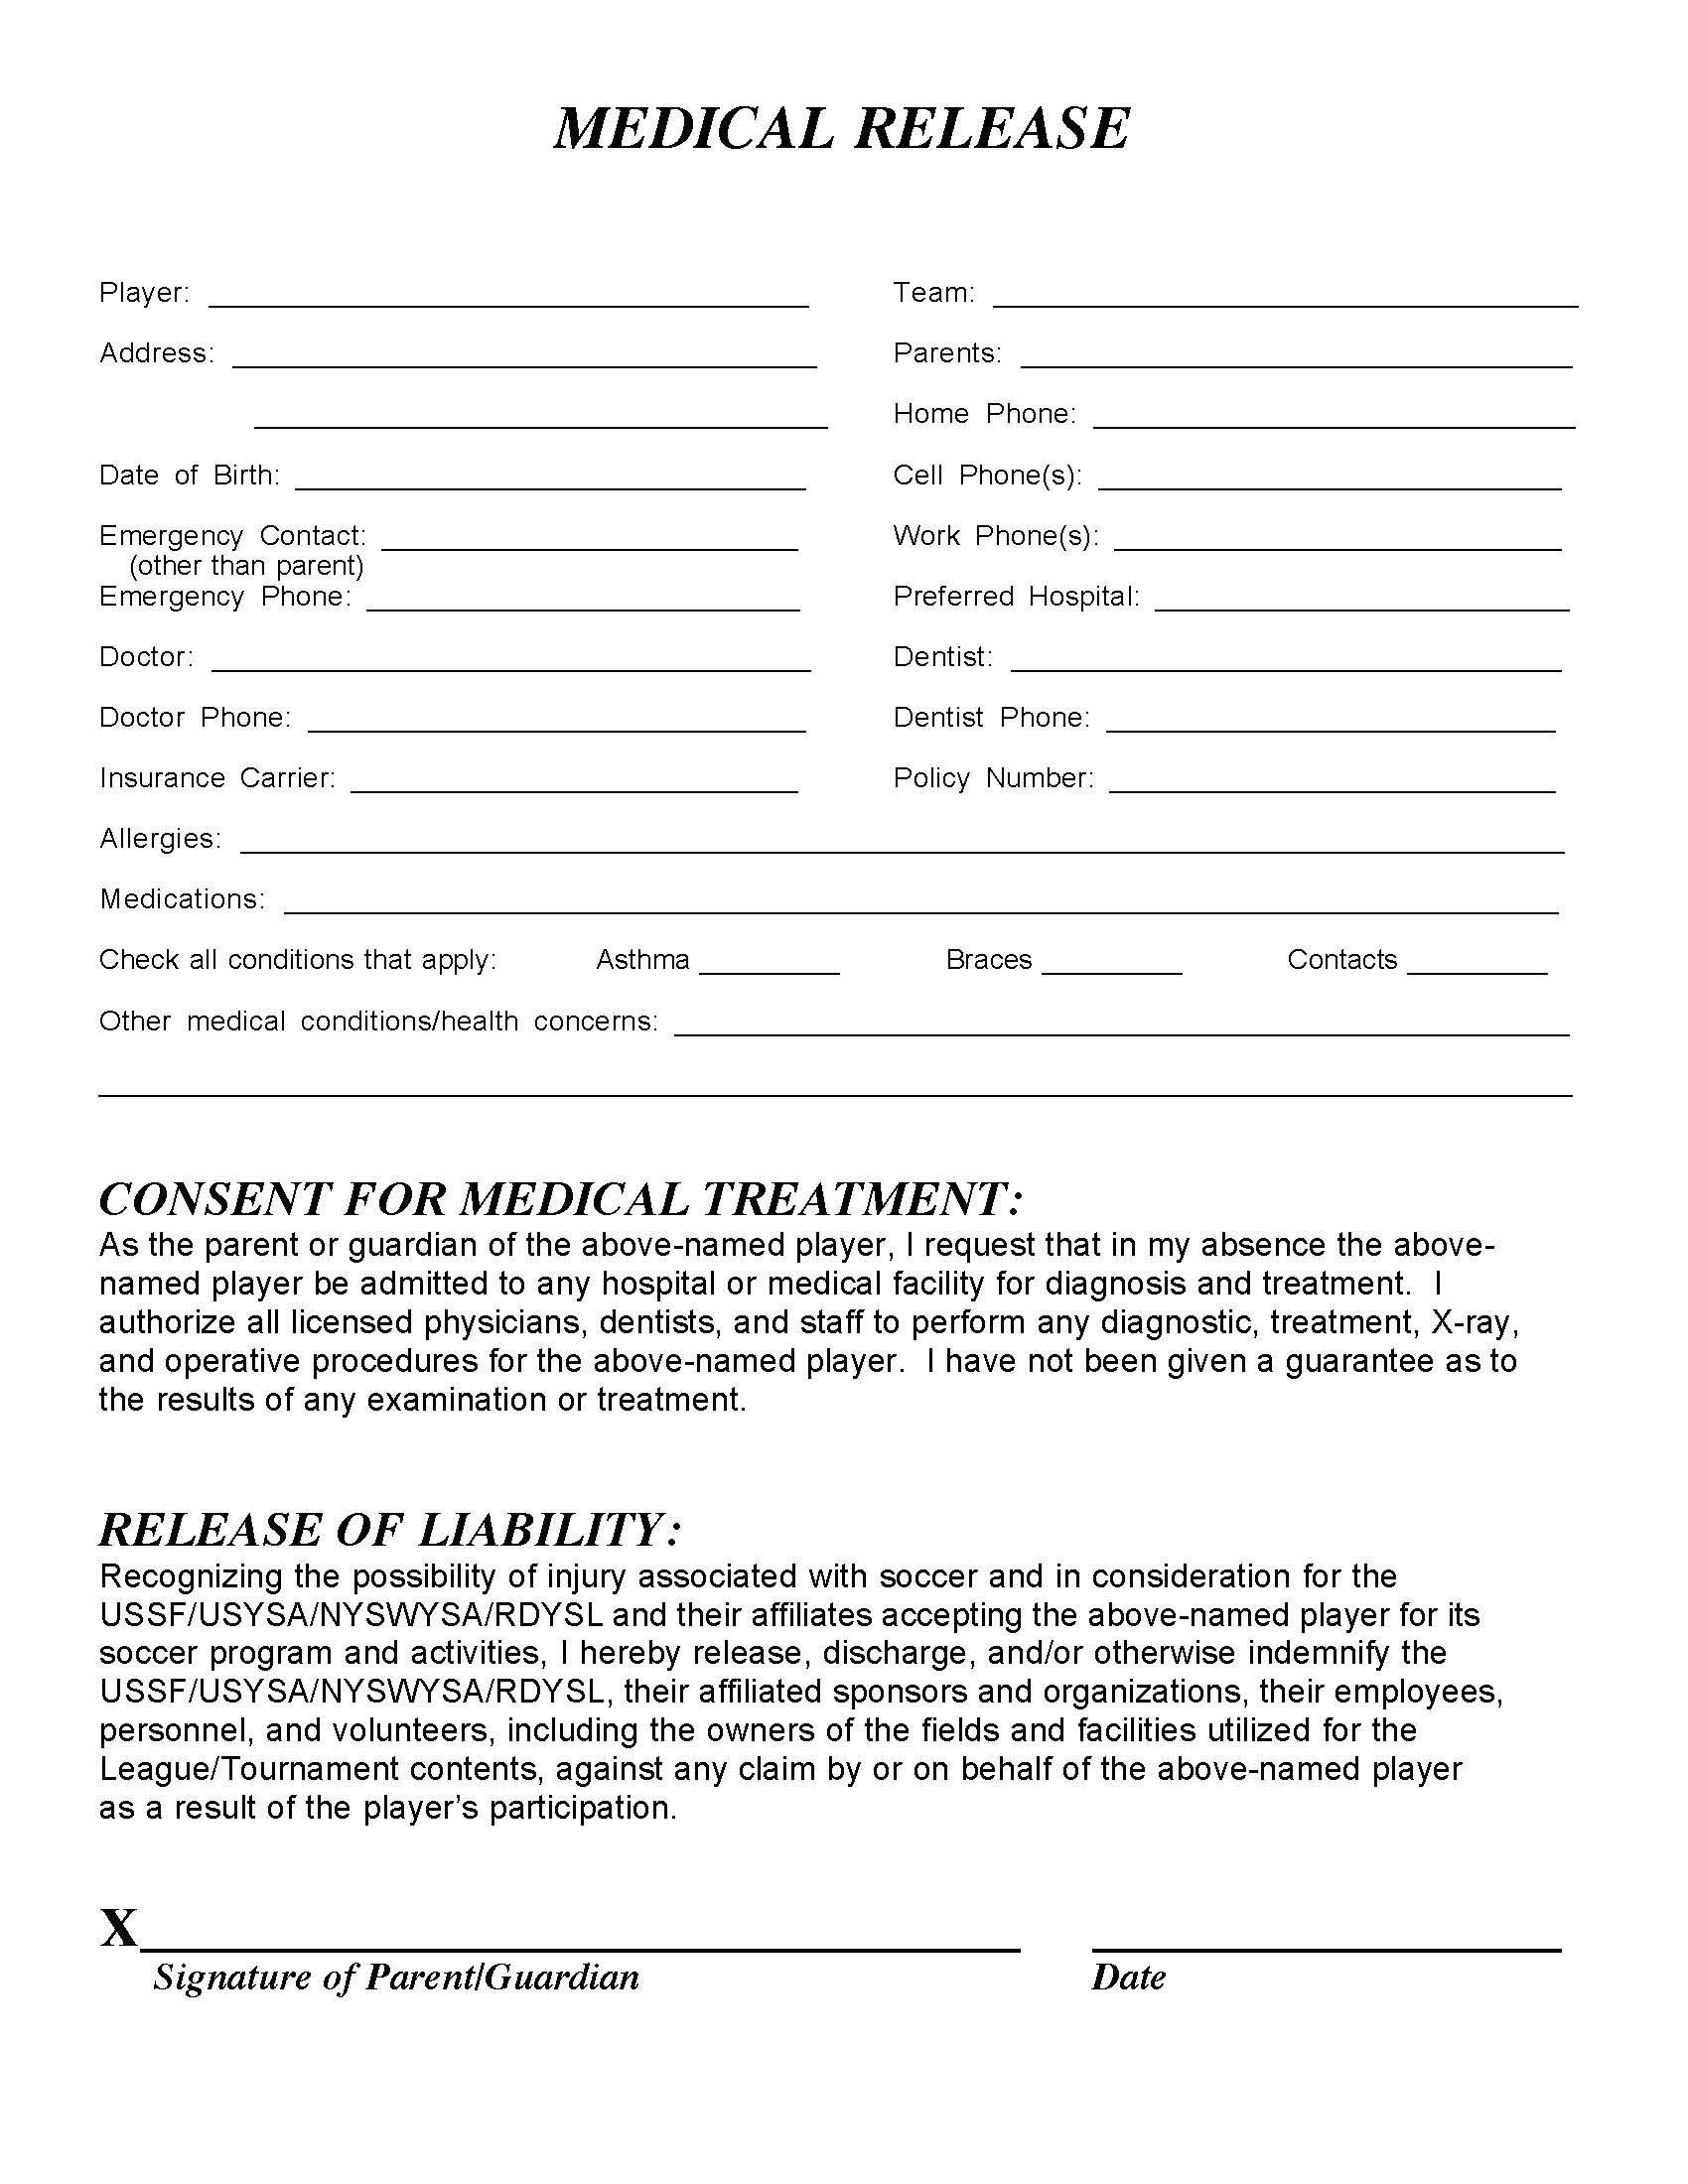 Medical Release Form U2013 Templates Free Printable